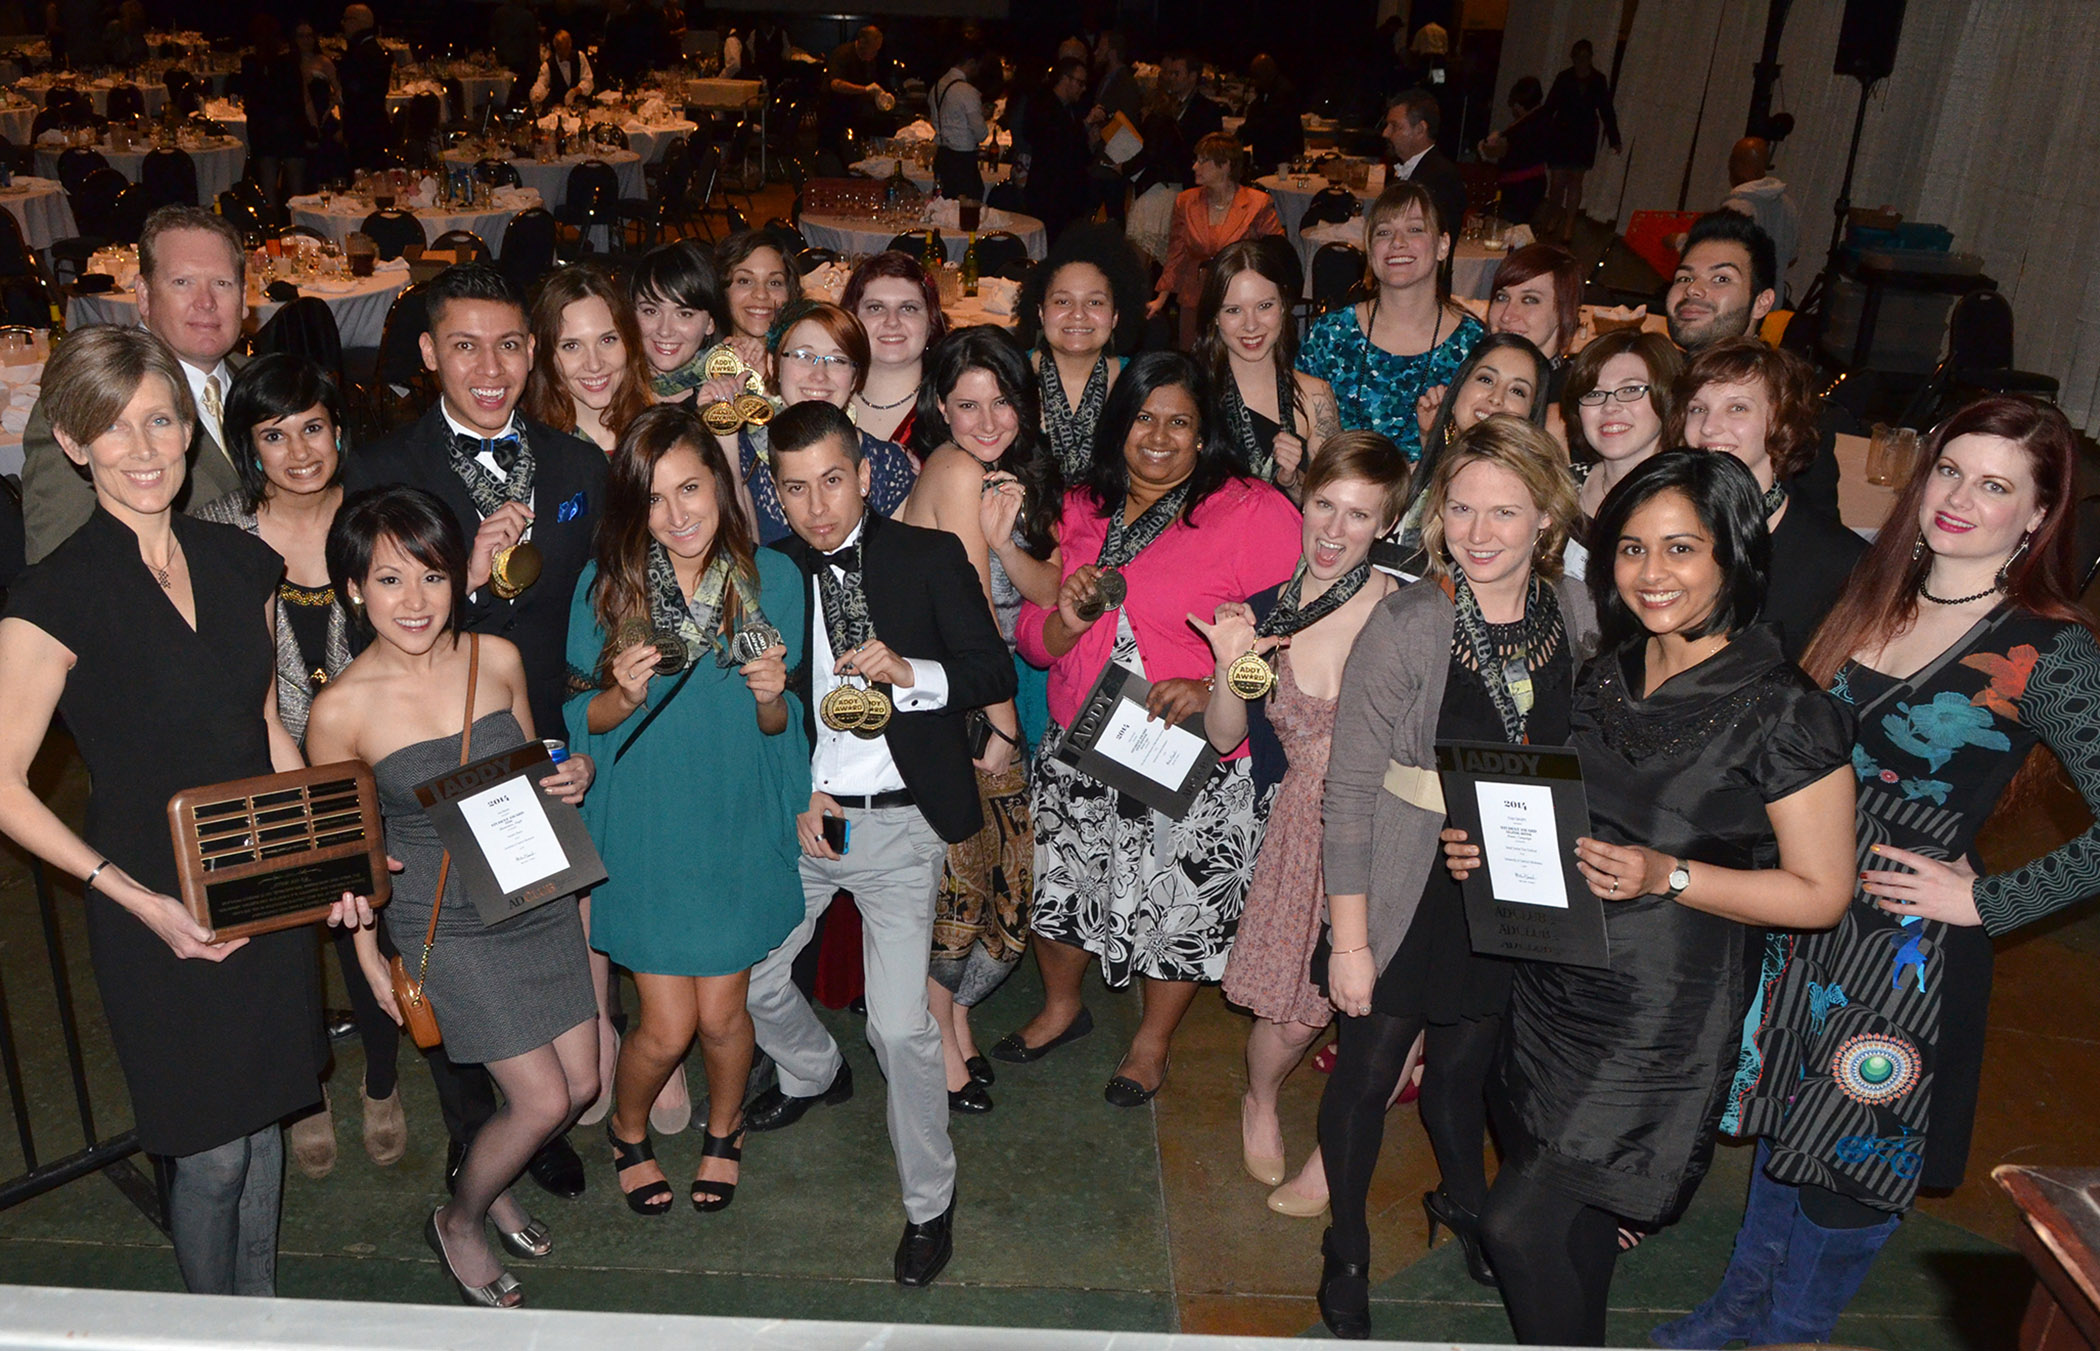 University of Central Oklahoma design students, alongside design faculty, show off the 90 awards they earned at the 2014 Oklahoma City Ad Club's ADDY Awards.